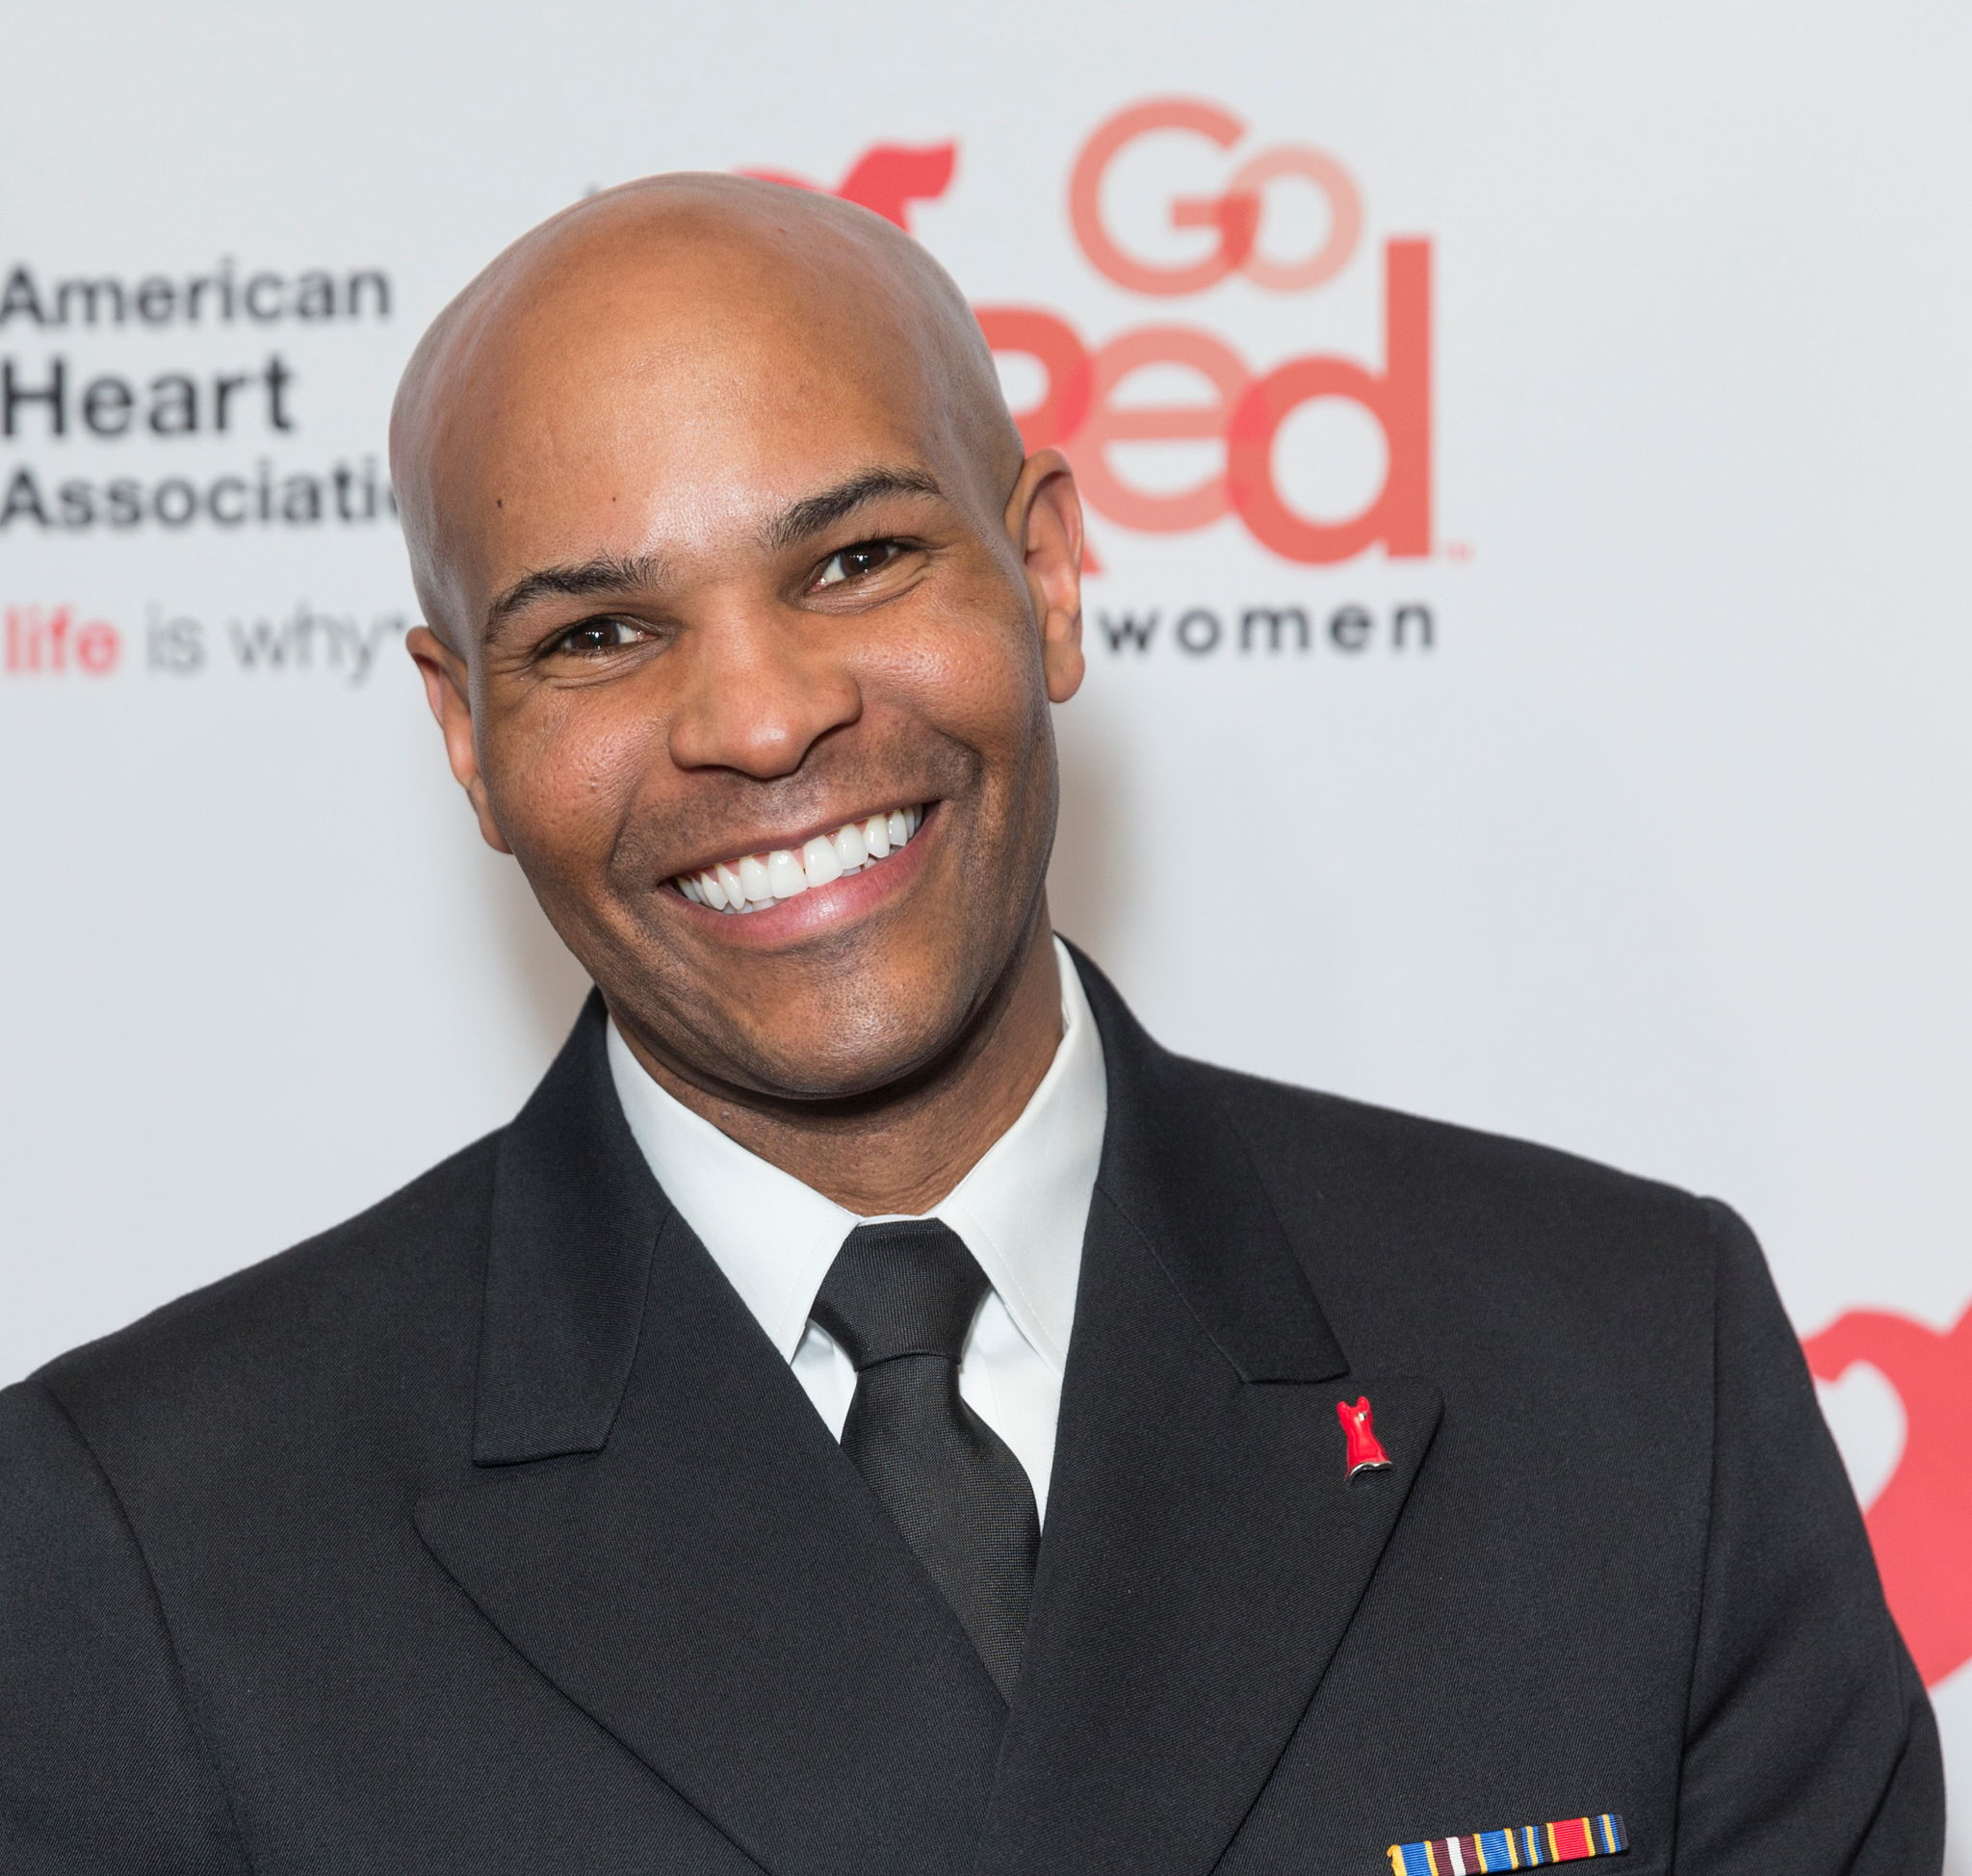 U.S. Surgeon General Dr. Jerome Adams attends show for Red Dress 2018 Collection Fashion Show at Hammerstein Ballroom. lev radin / Shutterstock.com.